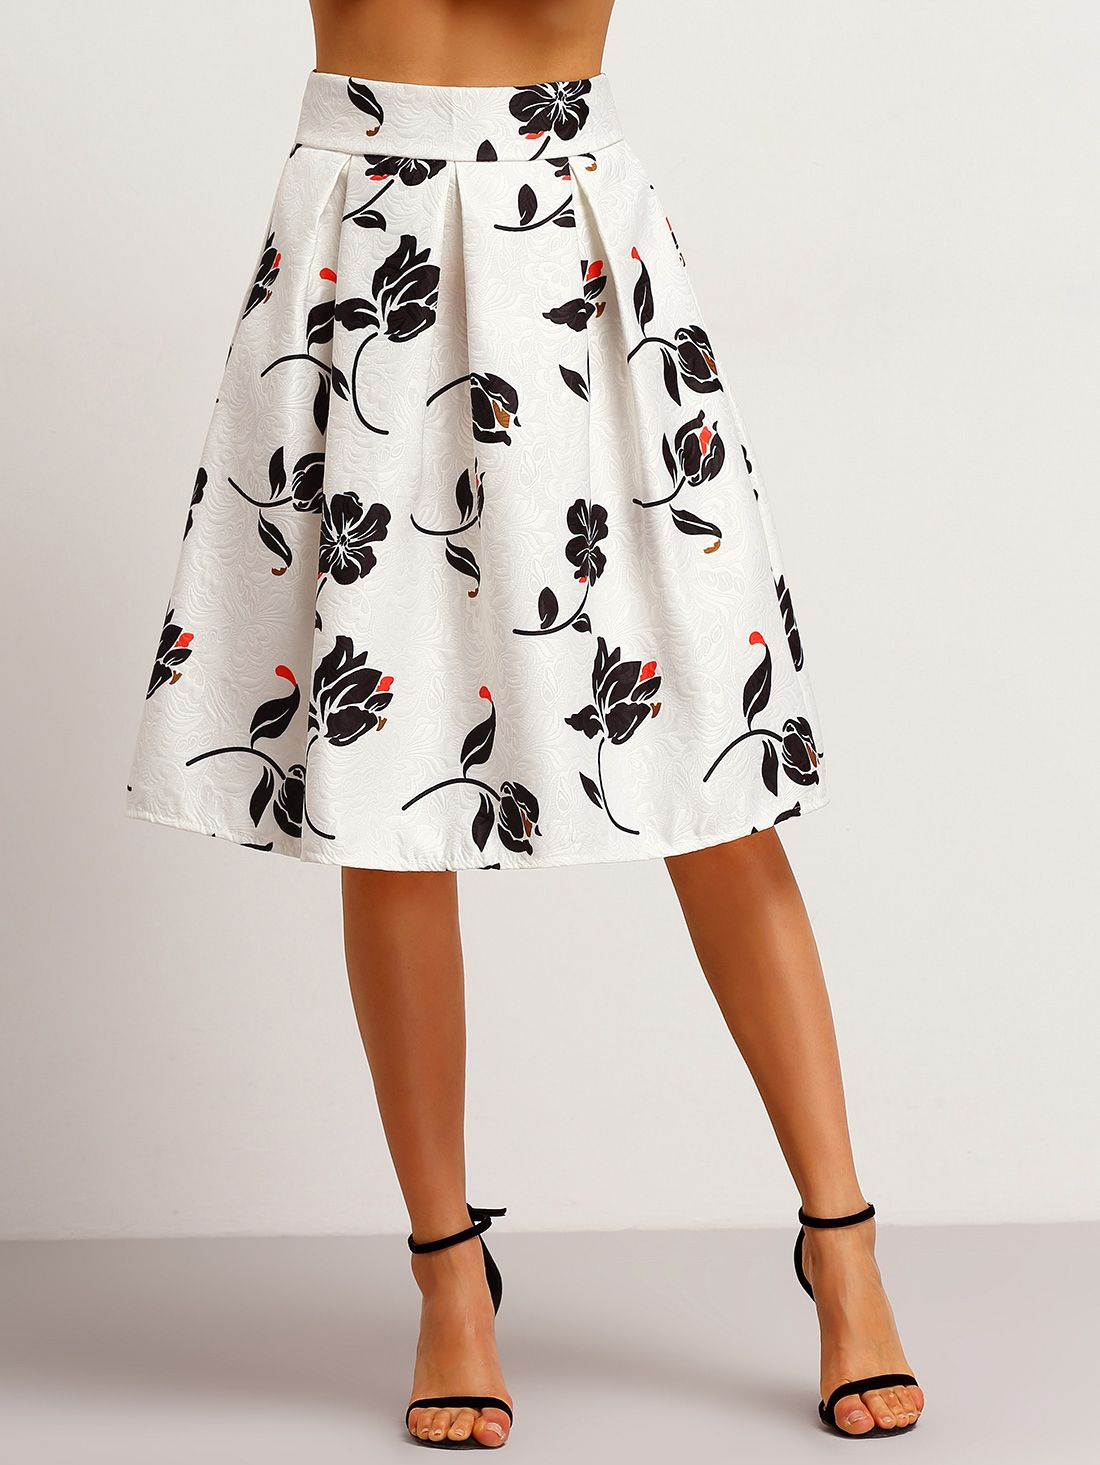 b42147c40 Shop White Floral Jacquard Flare Skirt online. SheIn offers White ...